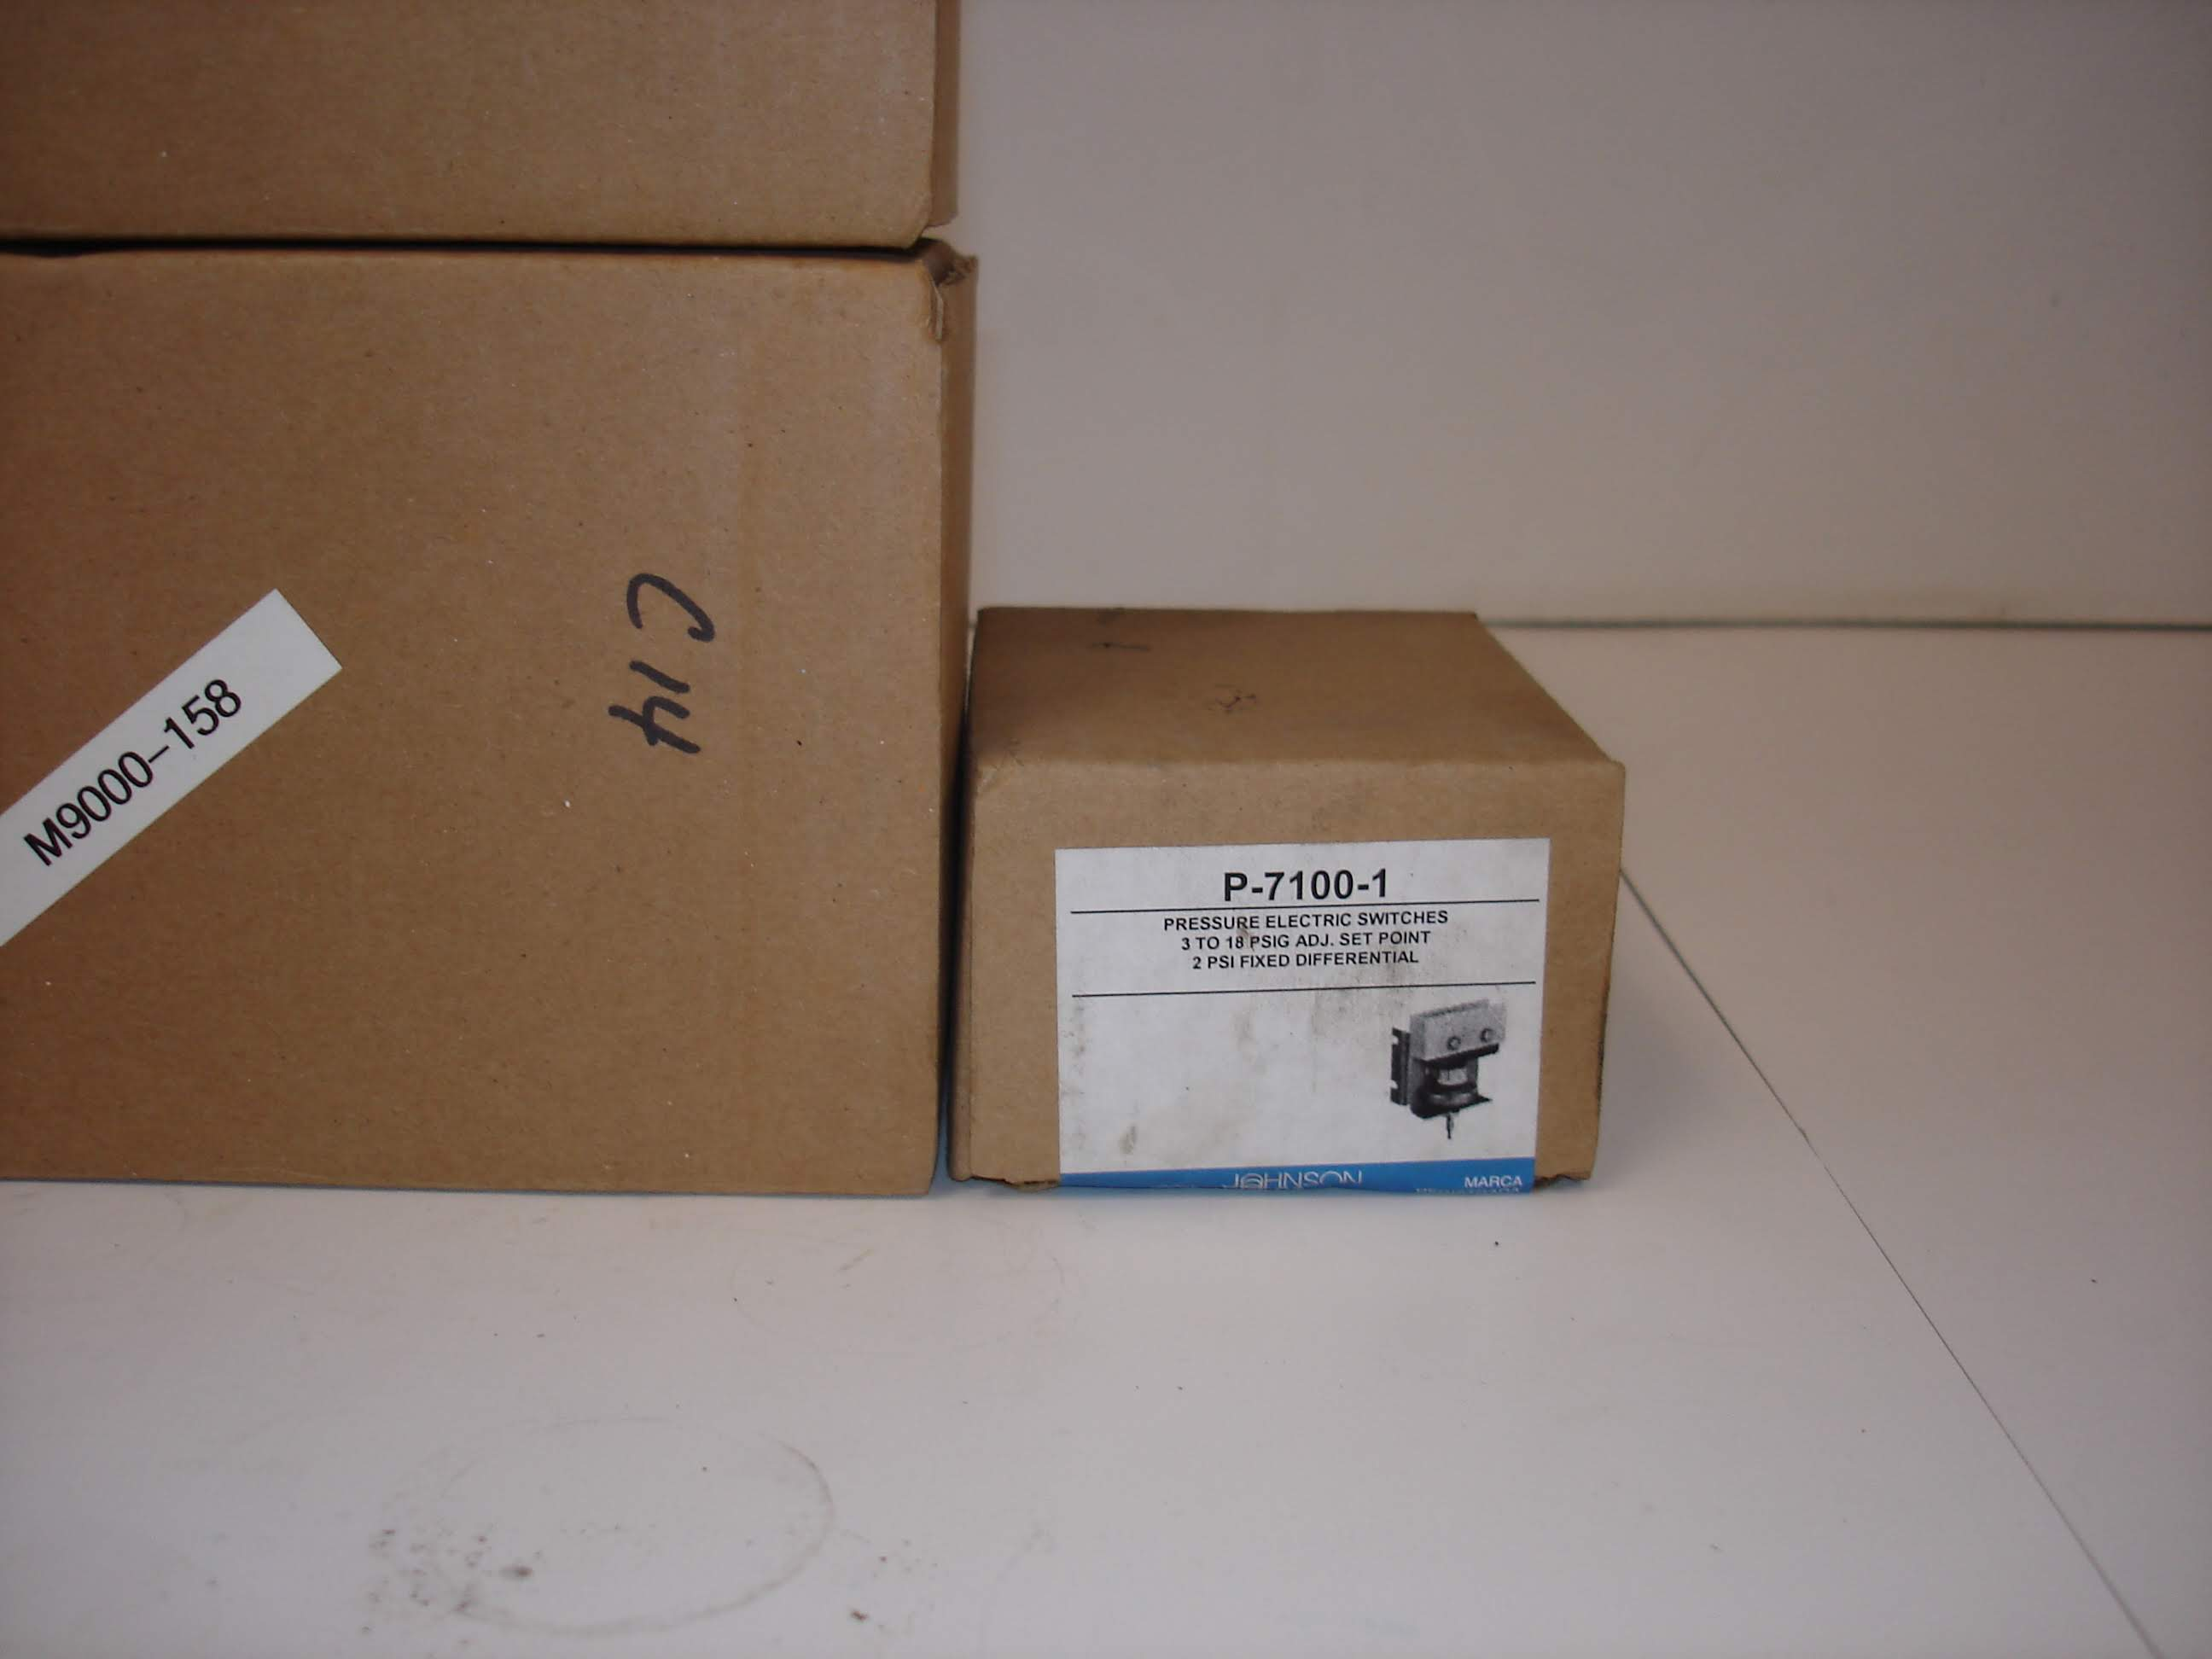 Lot 15A - (5) MISC JOHNSON CONTROLS KITS AND MORE: JOHNSON CONTROLS P-7100-1 AND ALL OTHER ITEMS INCLUDED IN